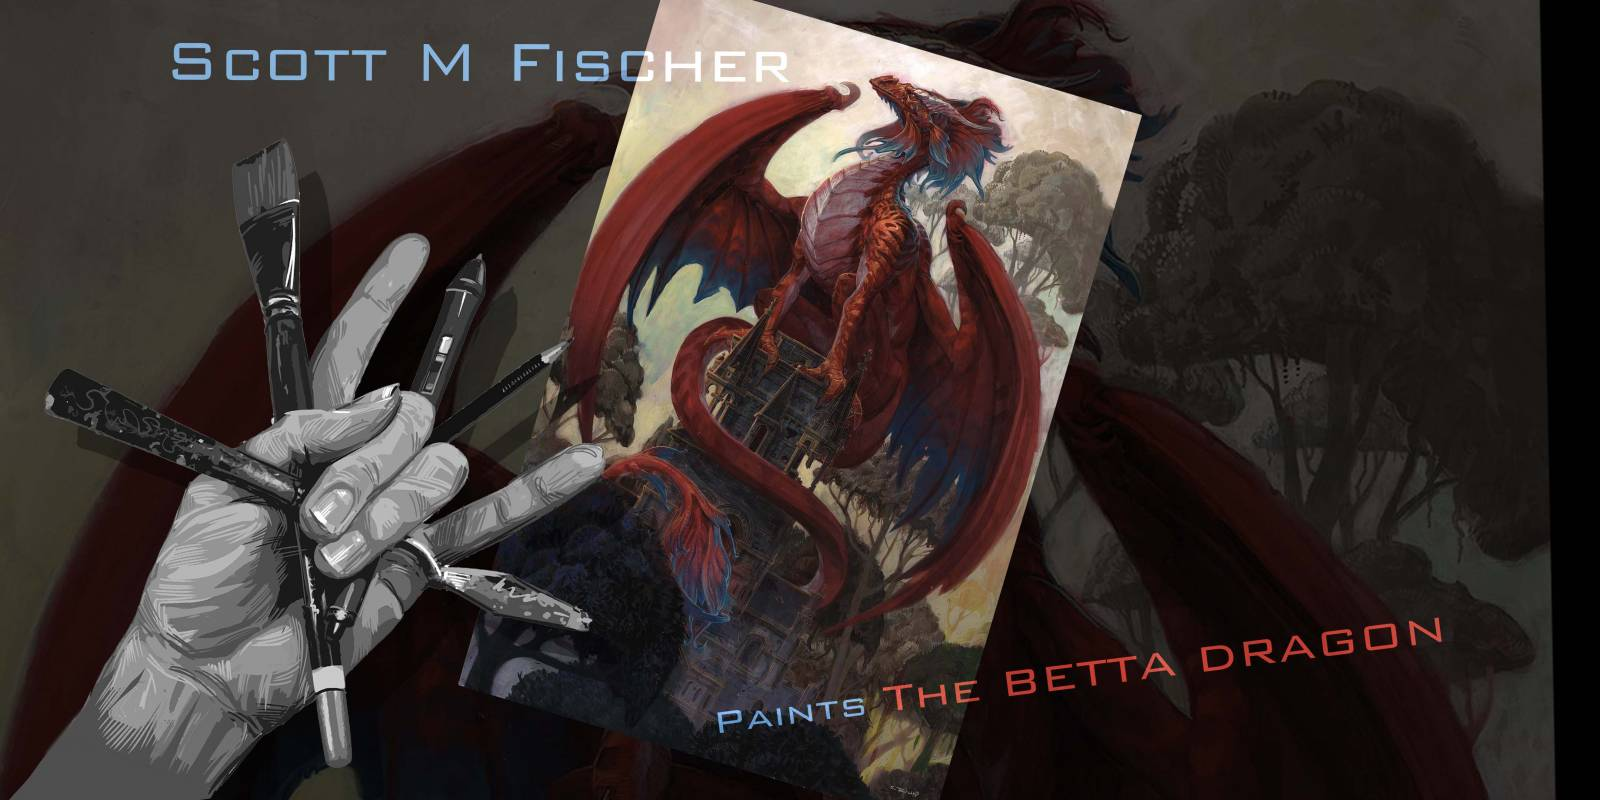 Fischer paints the Betta Dragon: video diary + my secret weapon revealed!